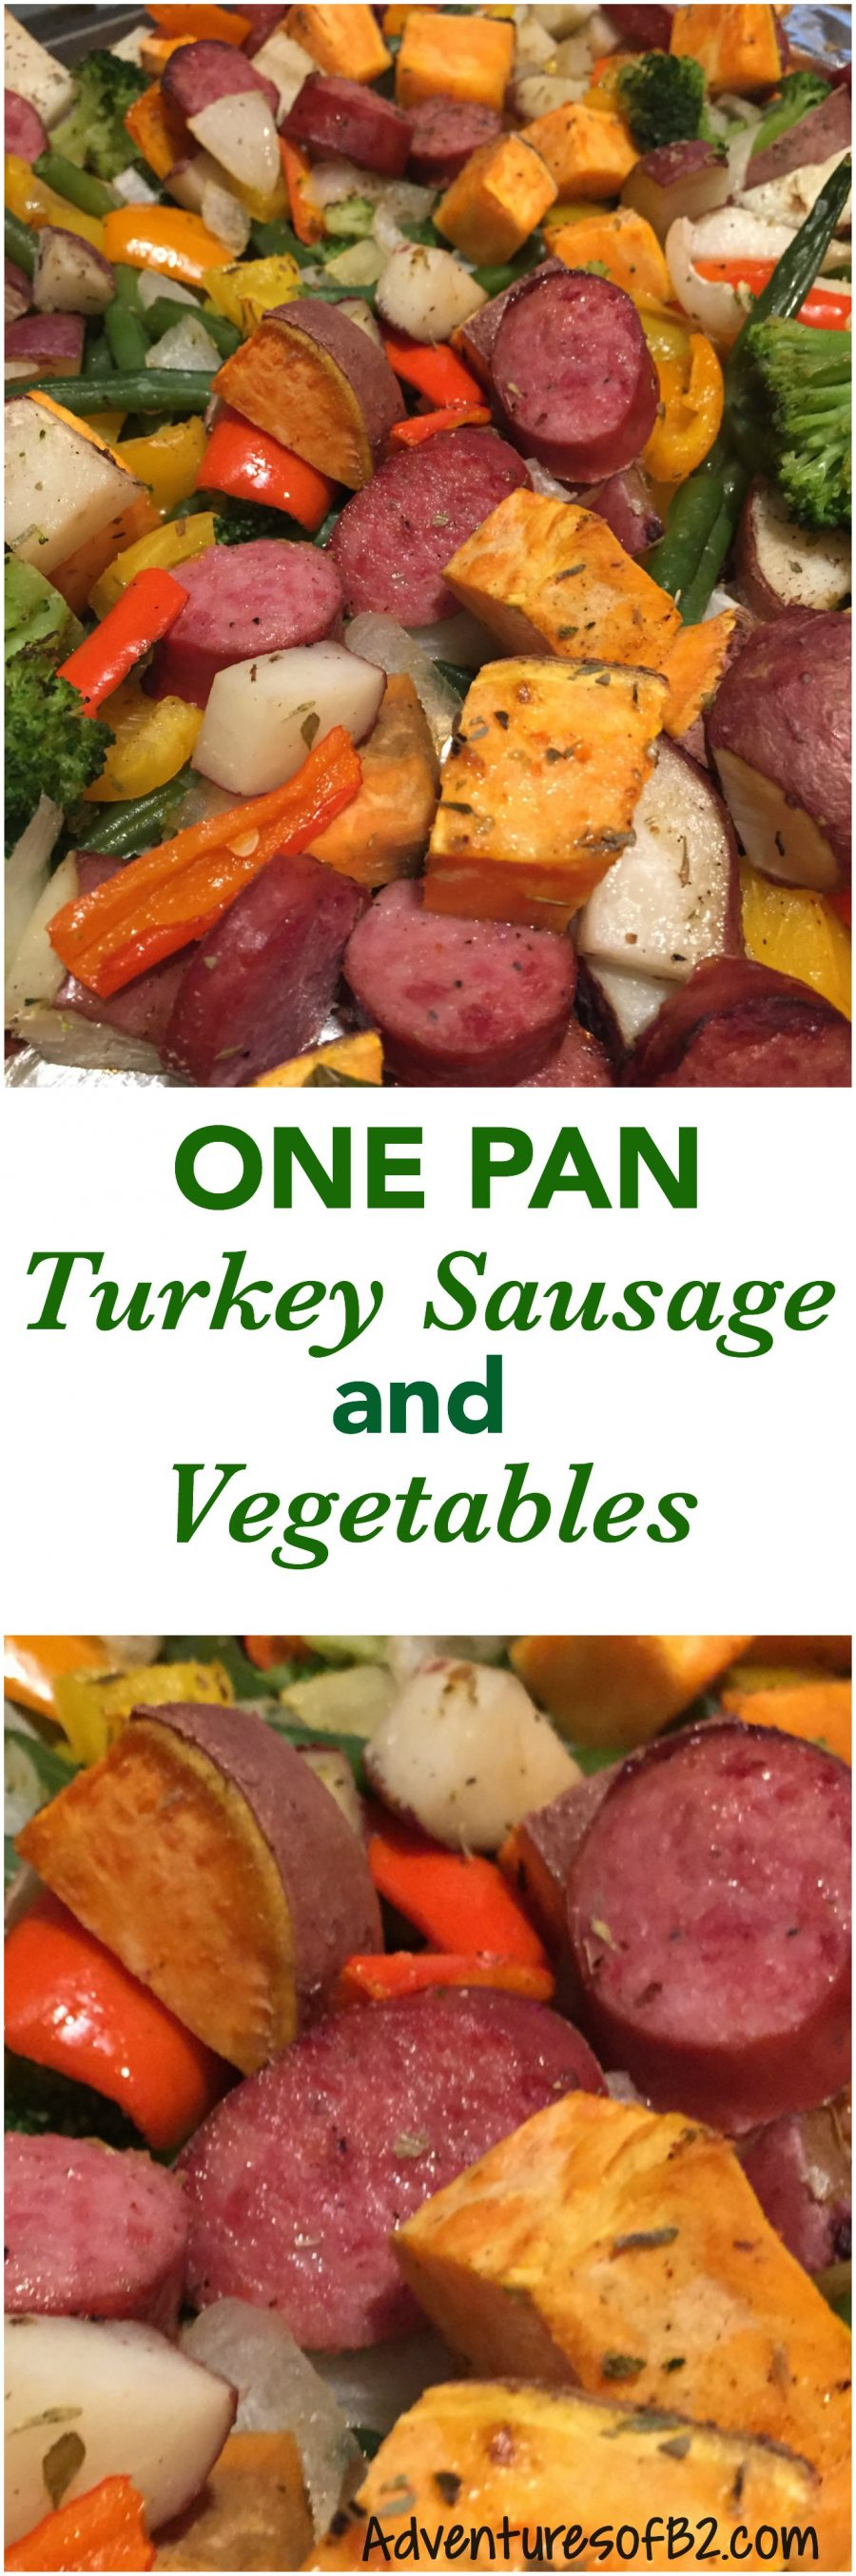 One Pan Turkey Sausage and Vegetables